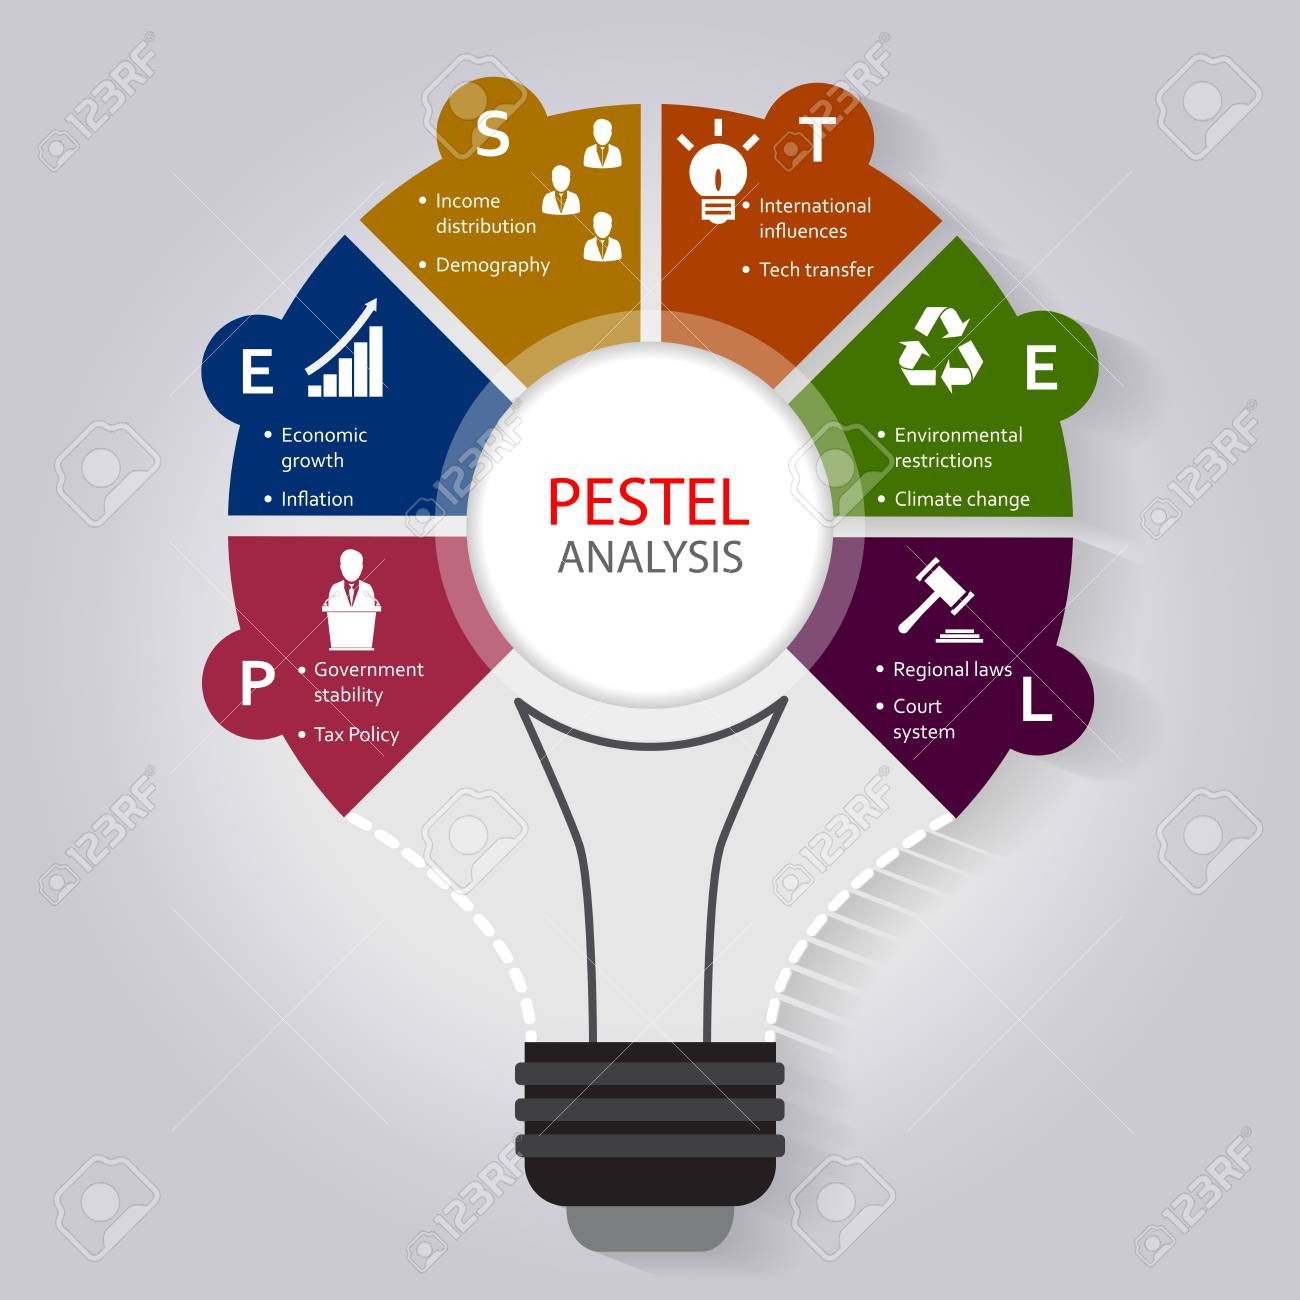 Pestel Analysis Infographic Template With Political Economic